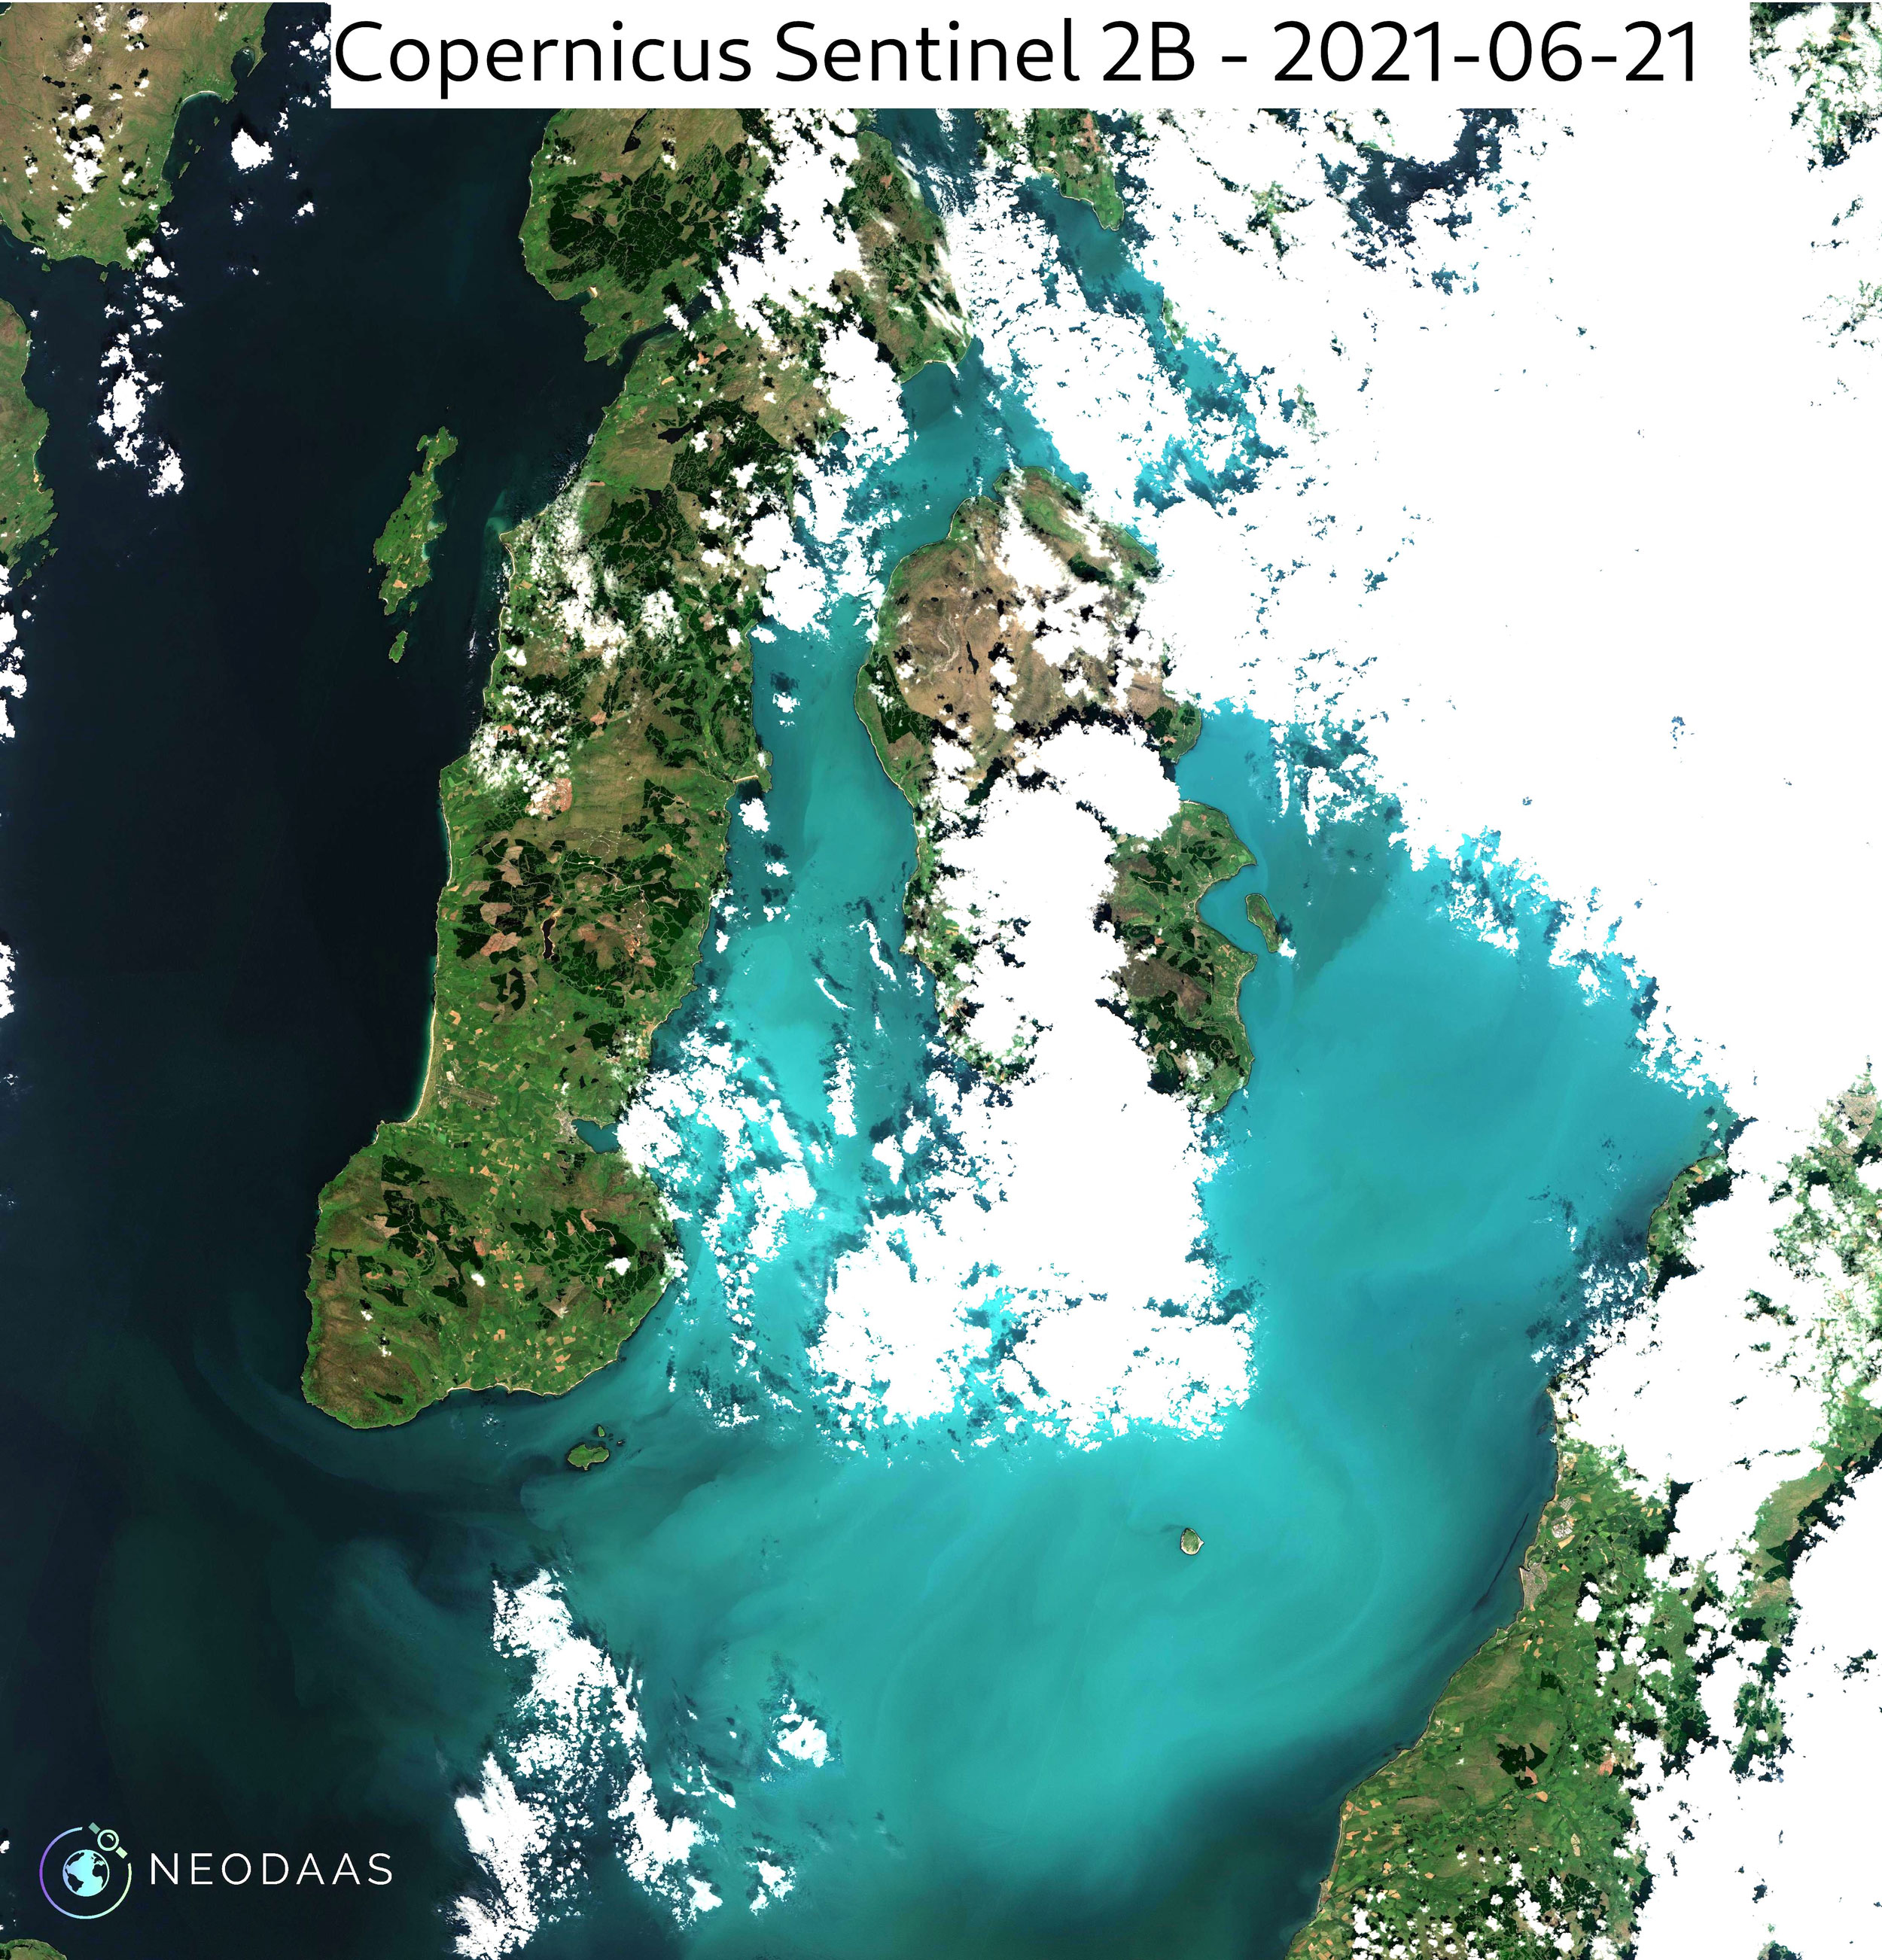 Sentinel-2 True Colour with enhanced contrast, 21 June